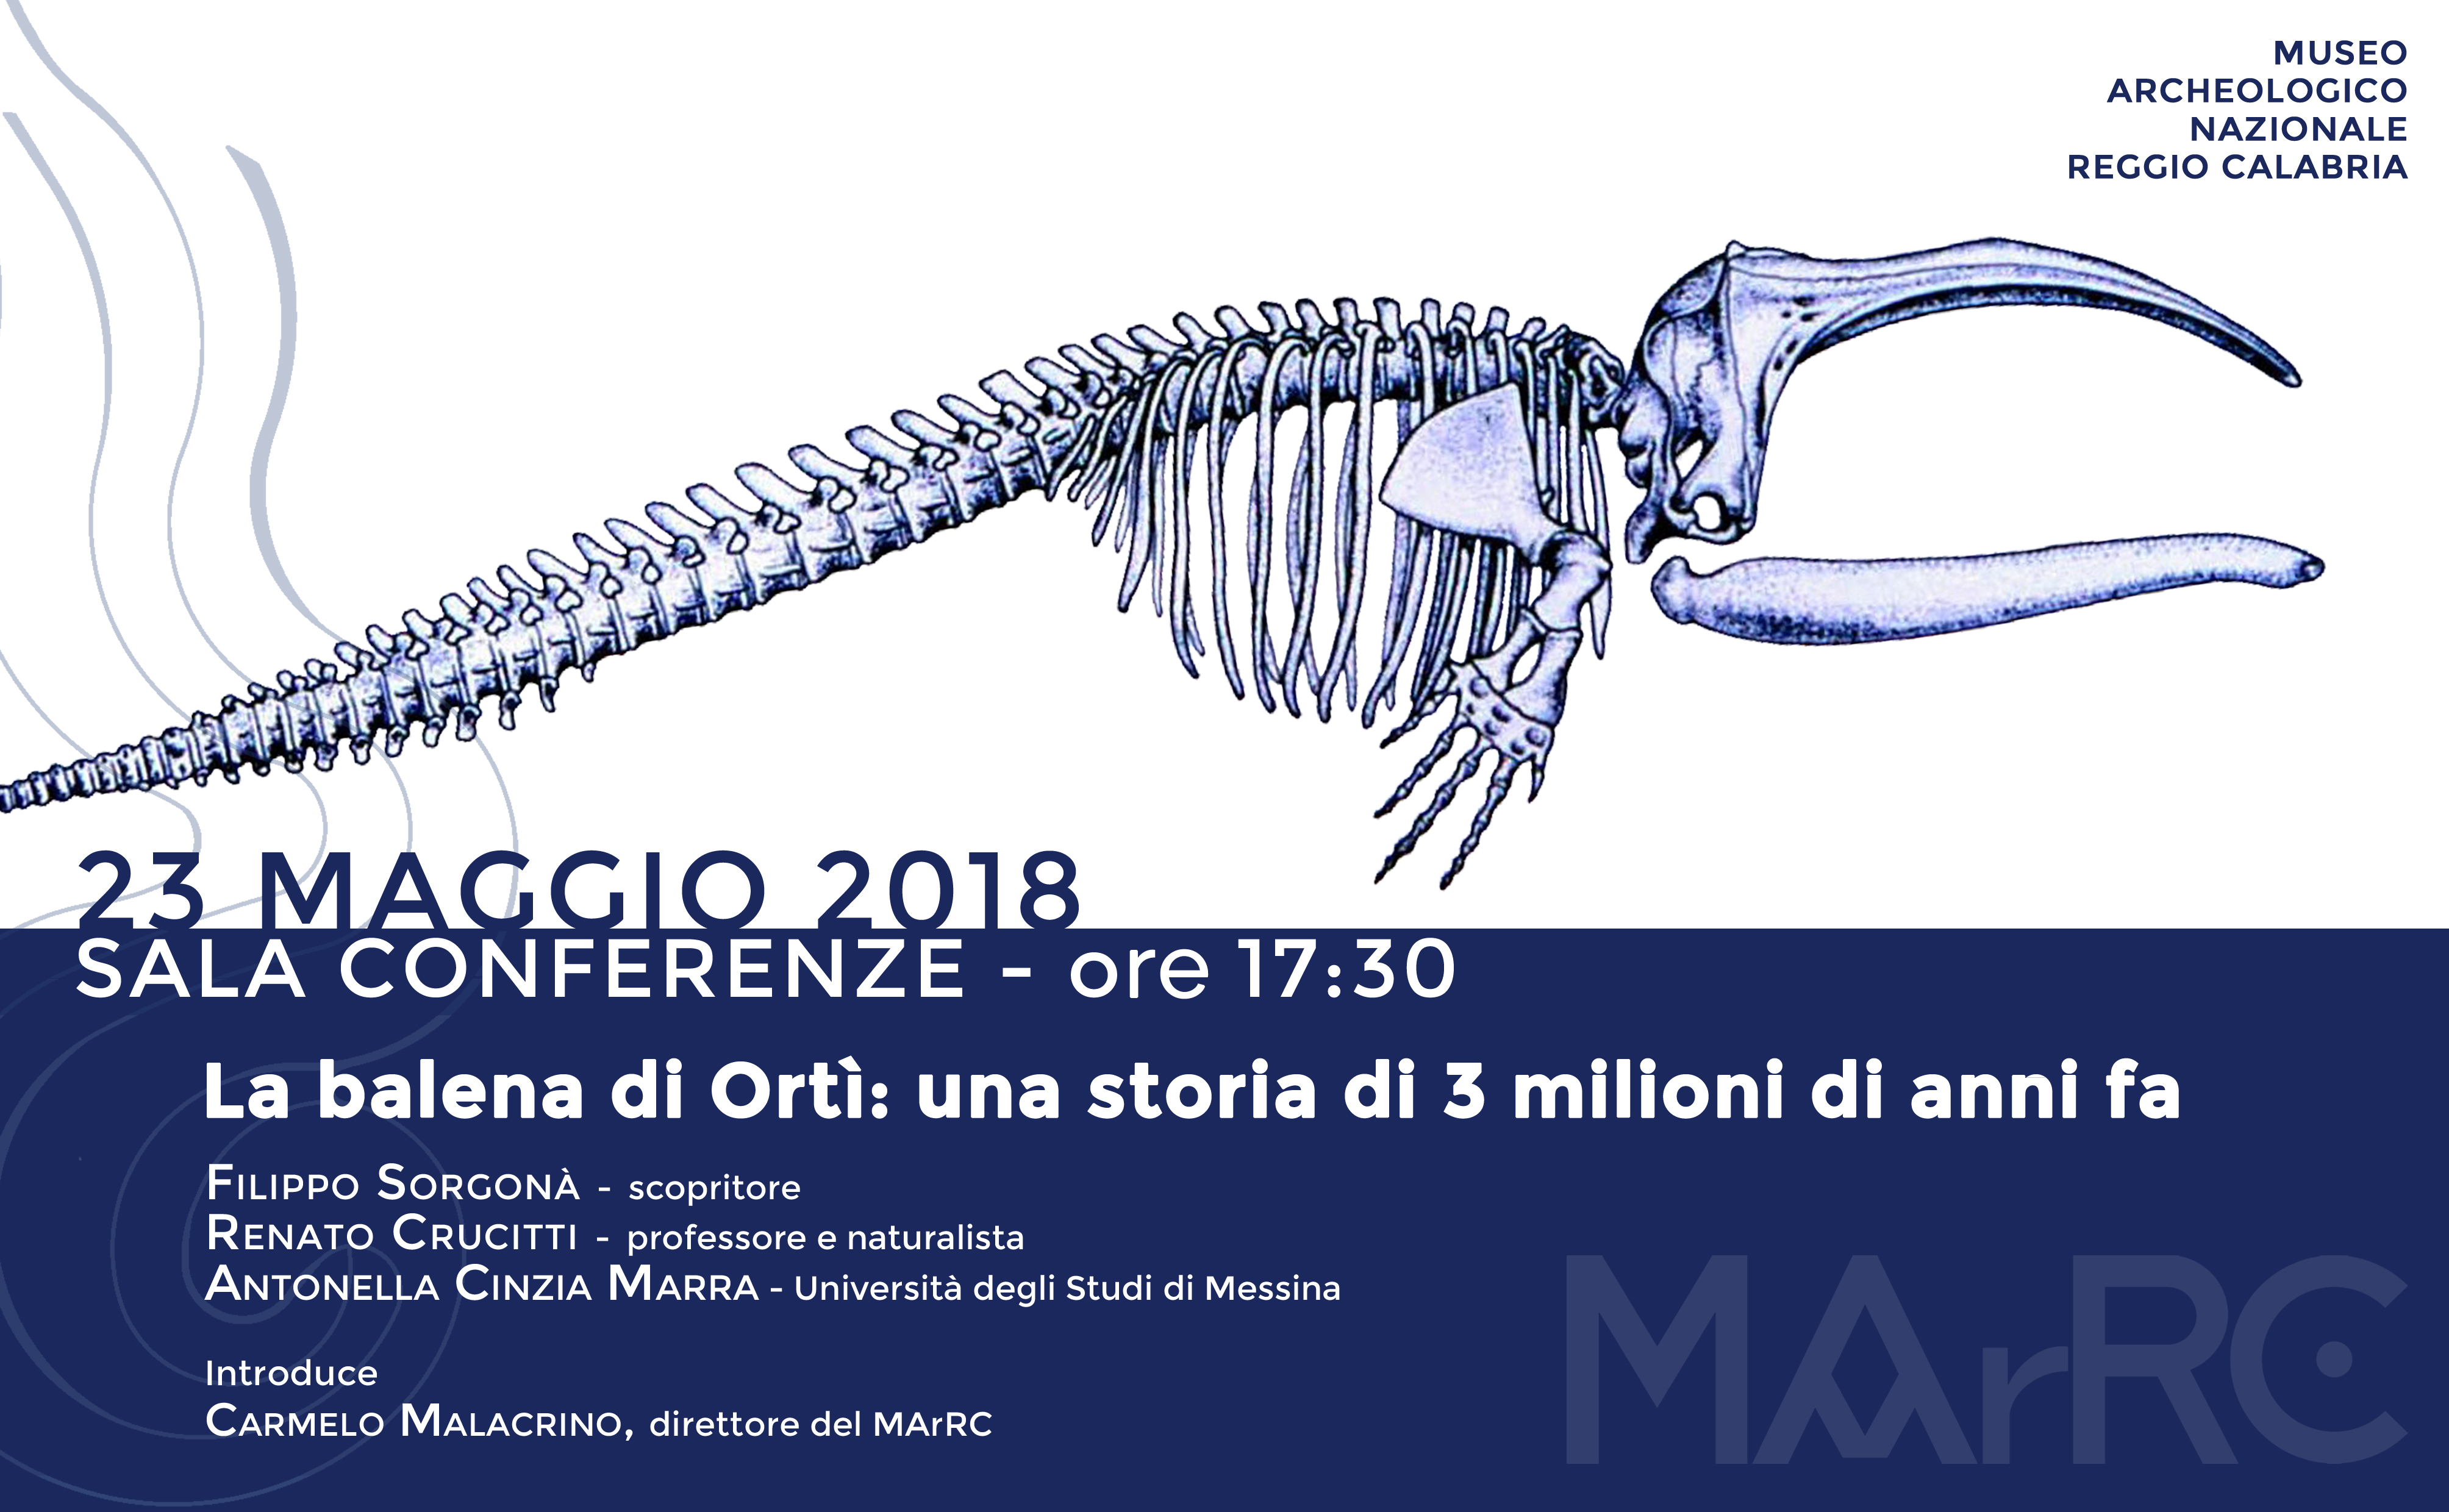 The fossil whale form Ortì